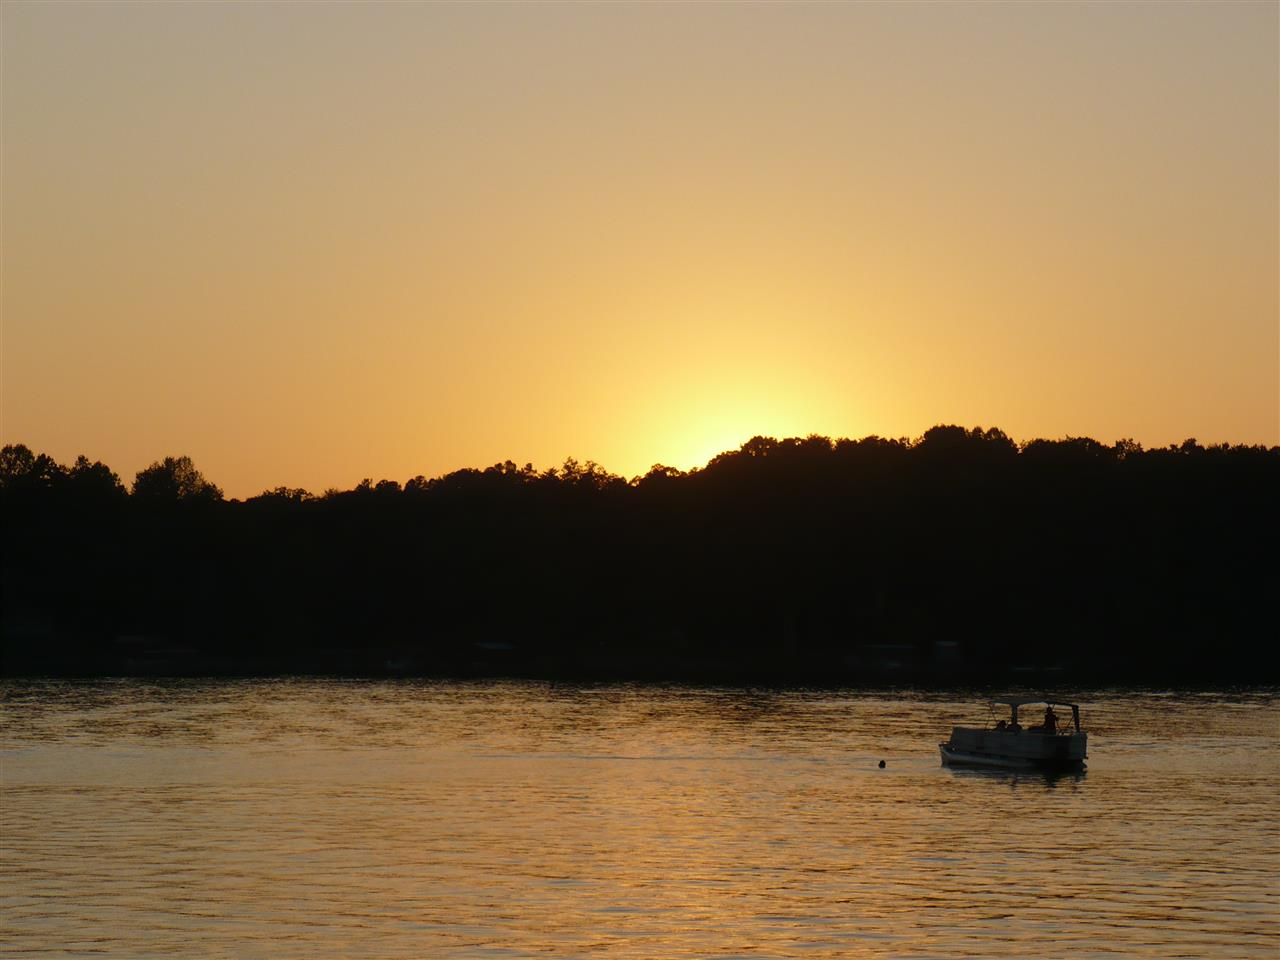 Sunset over Lake Norman in Davidson, NC.